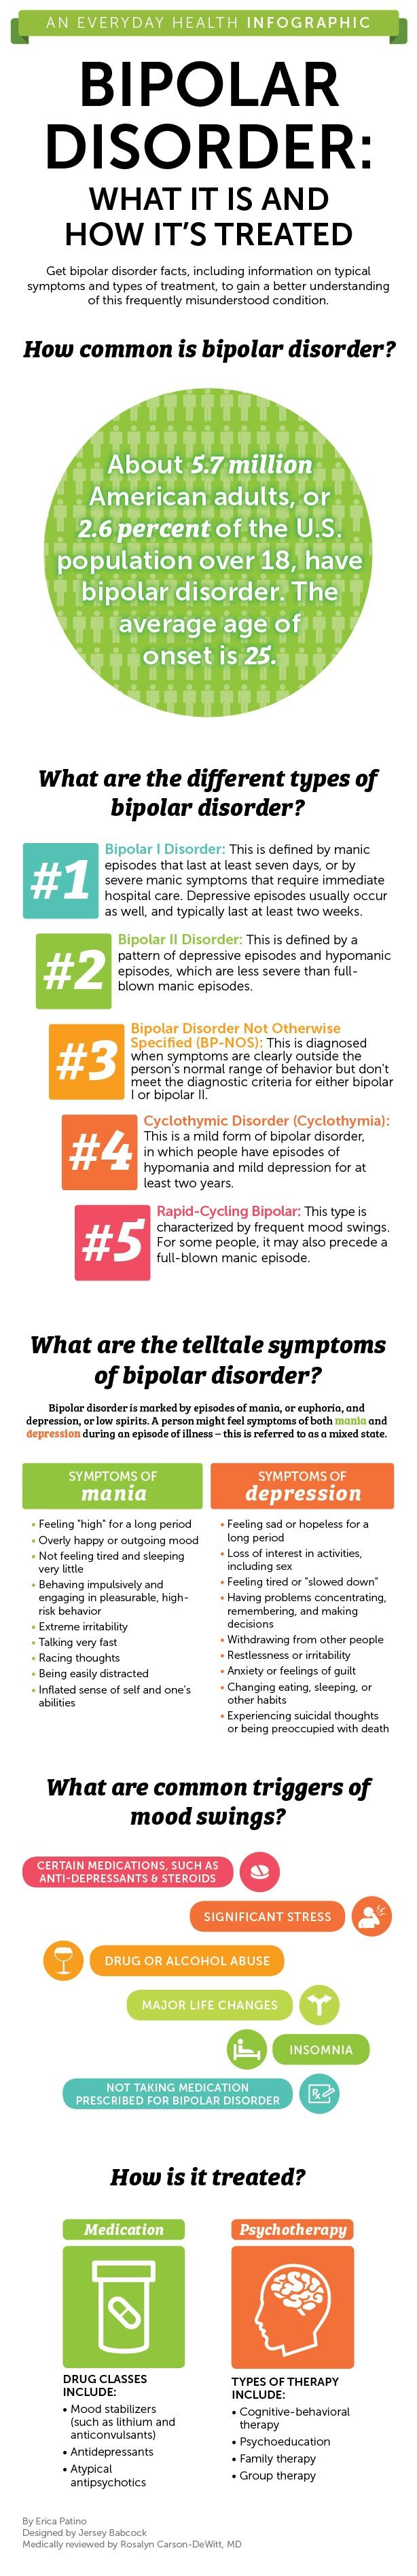 Get bipolar disorder facts, including information on typical symptoms and types of treatment, to gain a better understanding of this frequently misunderstood condition. #bipolardisorder #mentalhealth | everydayhealth.com